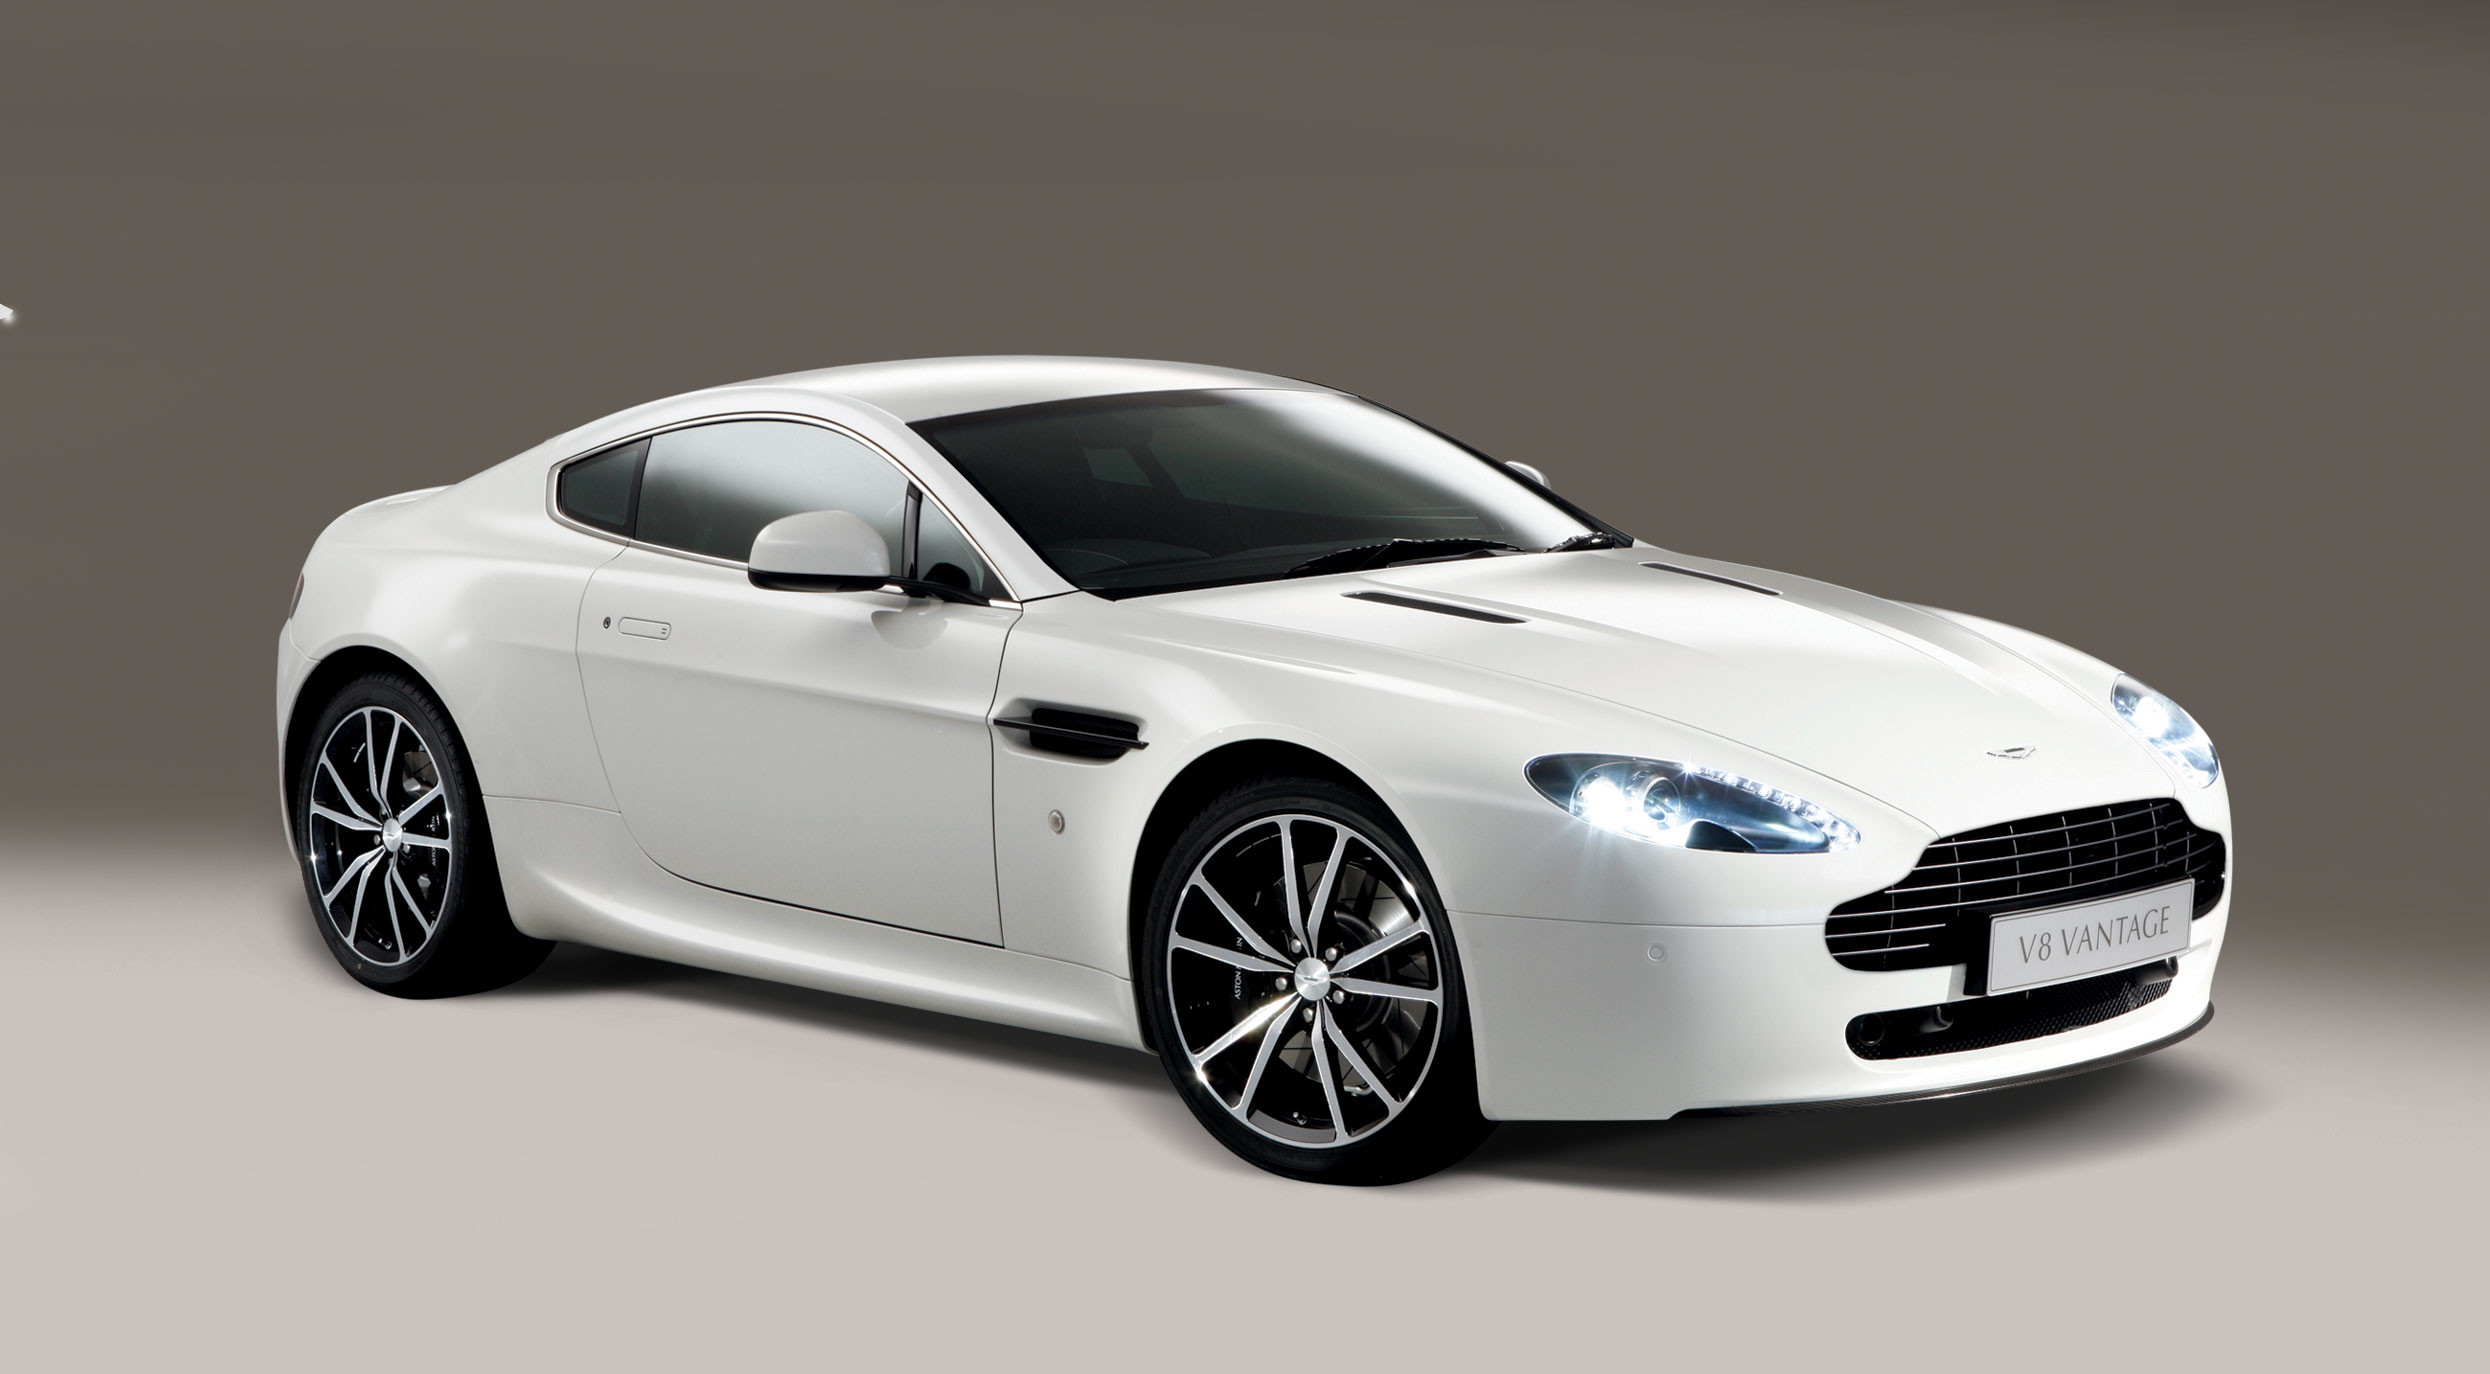 aston martin v8 vantage n420 1 10 - 2010 Aston Martin V8 Vantage Coup